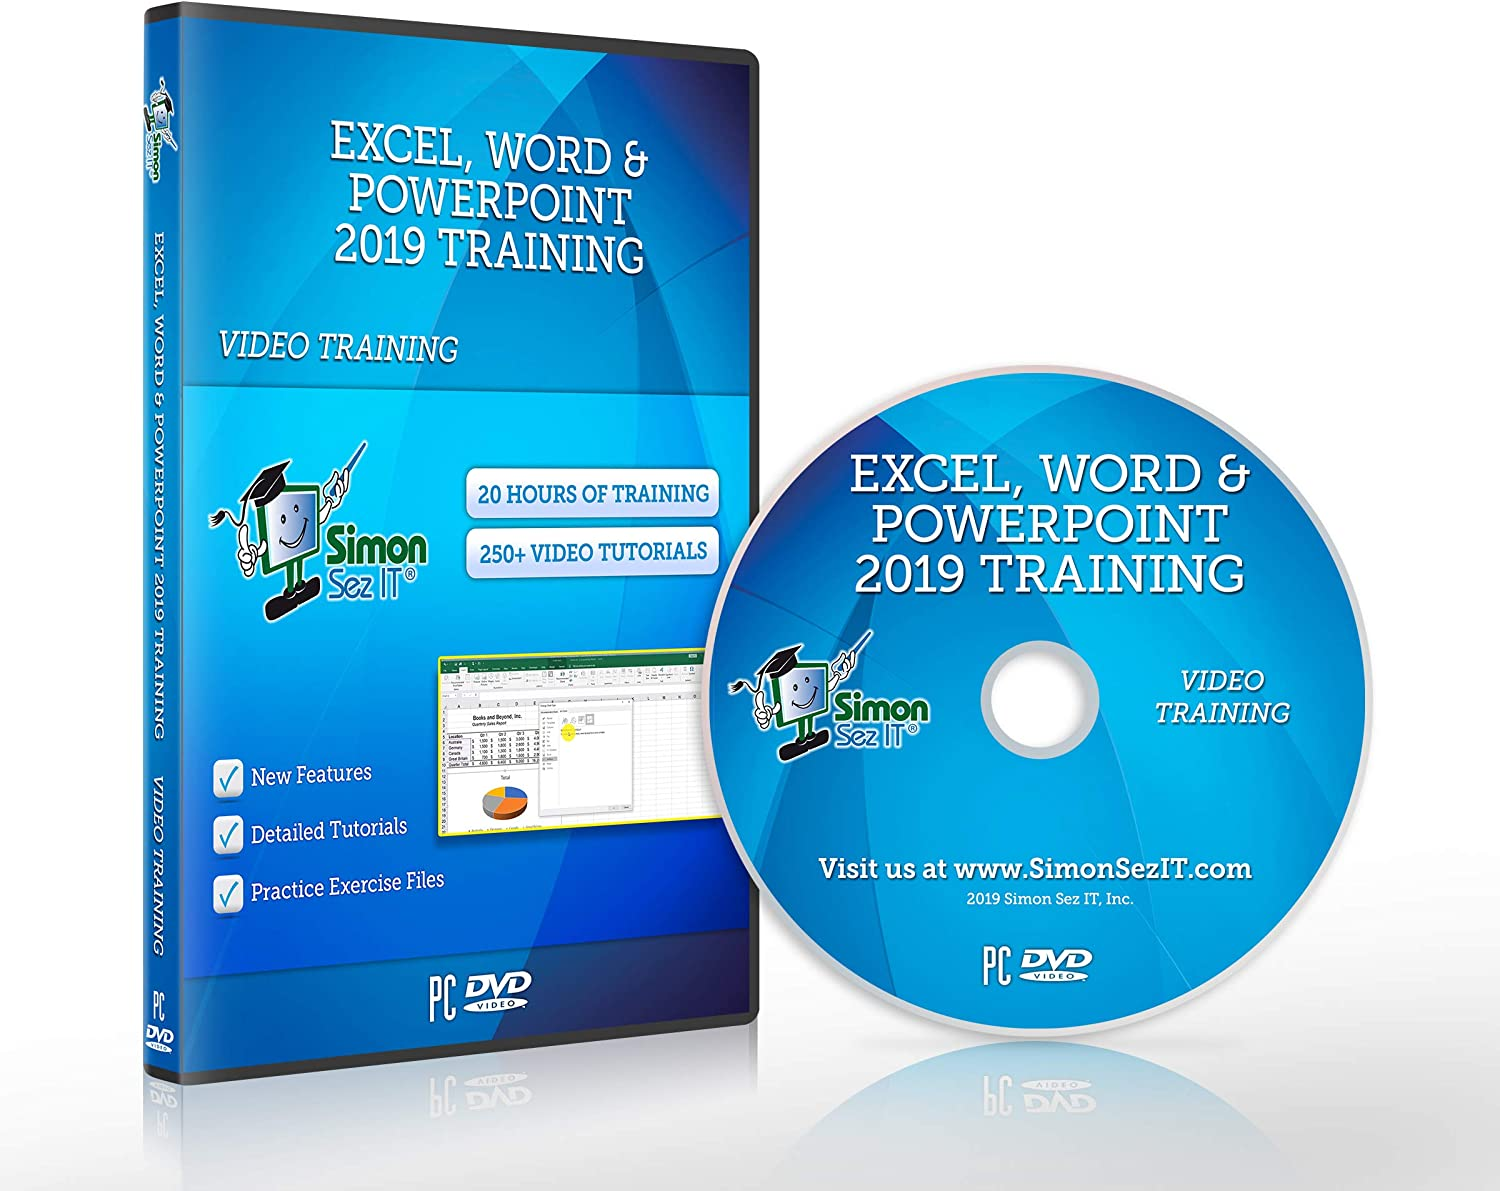 Microsoft Excel Word PowerPoint 2019 Branded Cheap mail order sales goods - O of 20 Hours